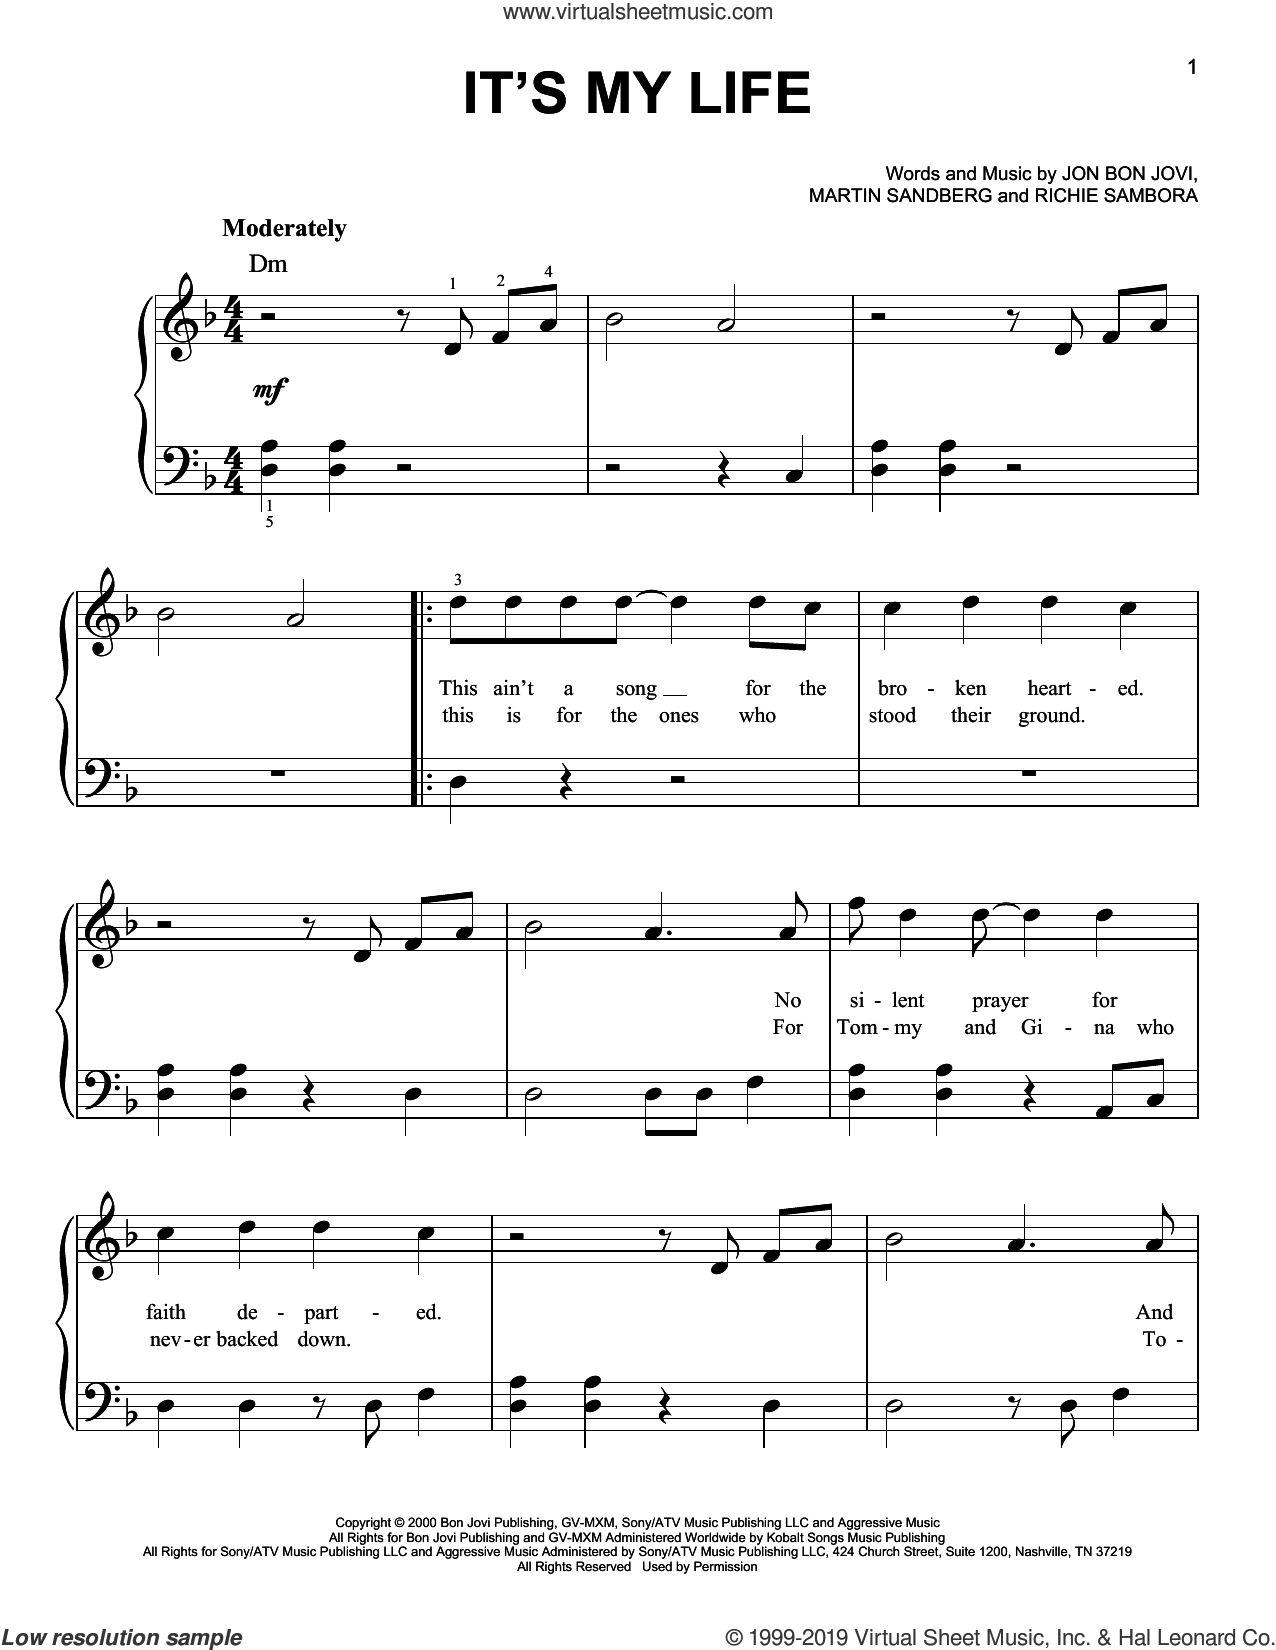 It's My Life sheet music for piano solo by Bon Jovi, Martin Sandberg and Richie Sambora, easy skill level